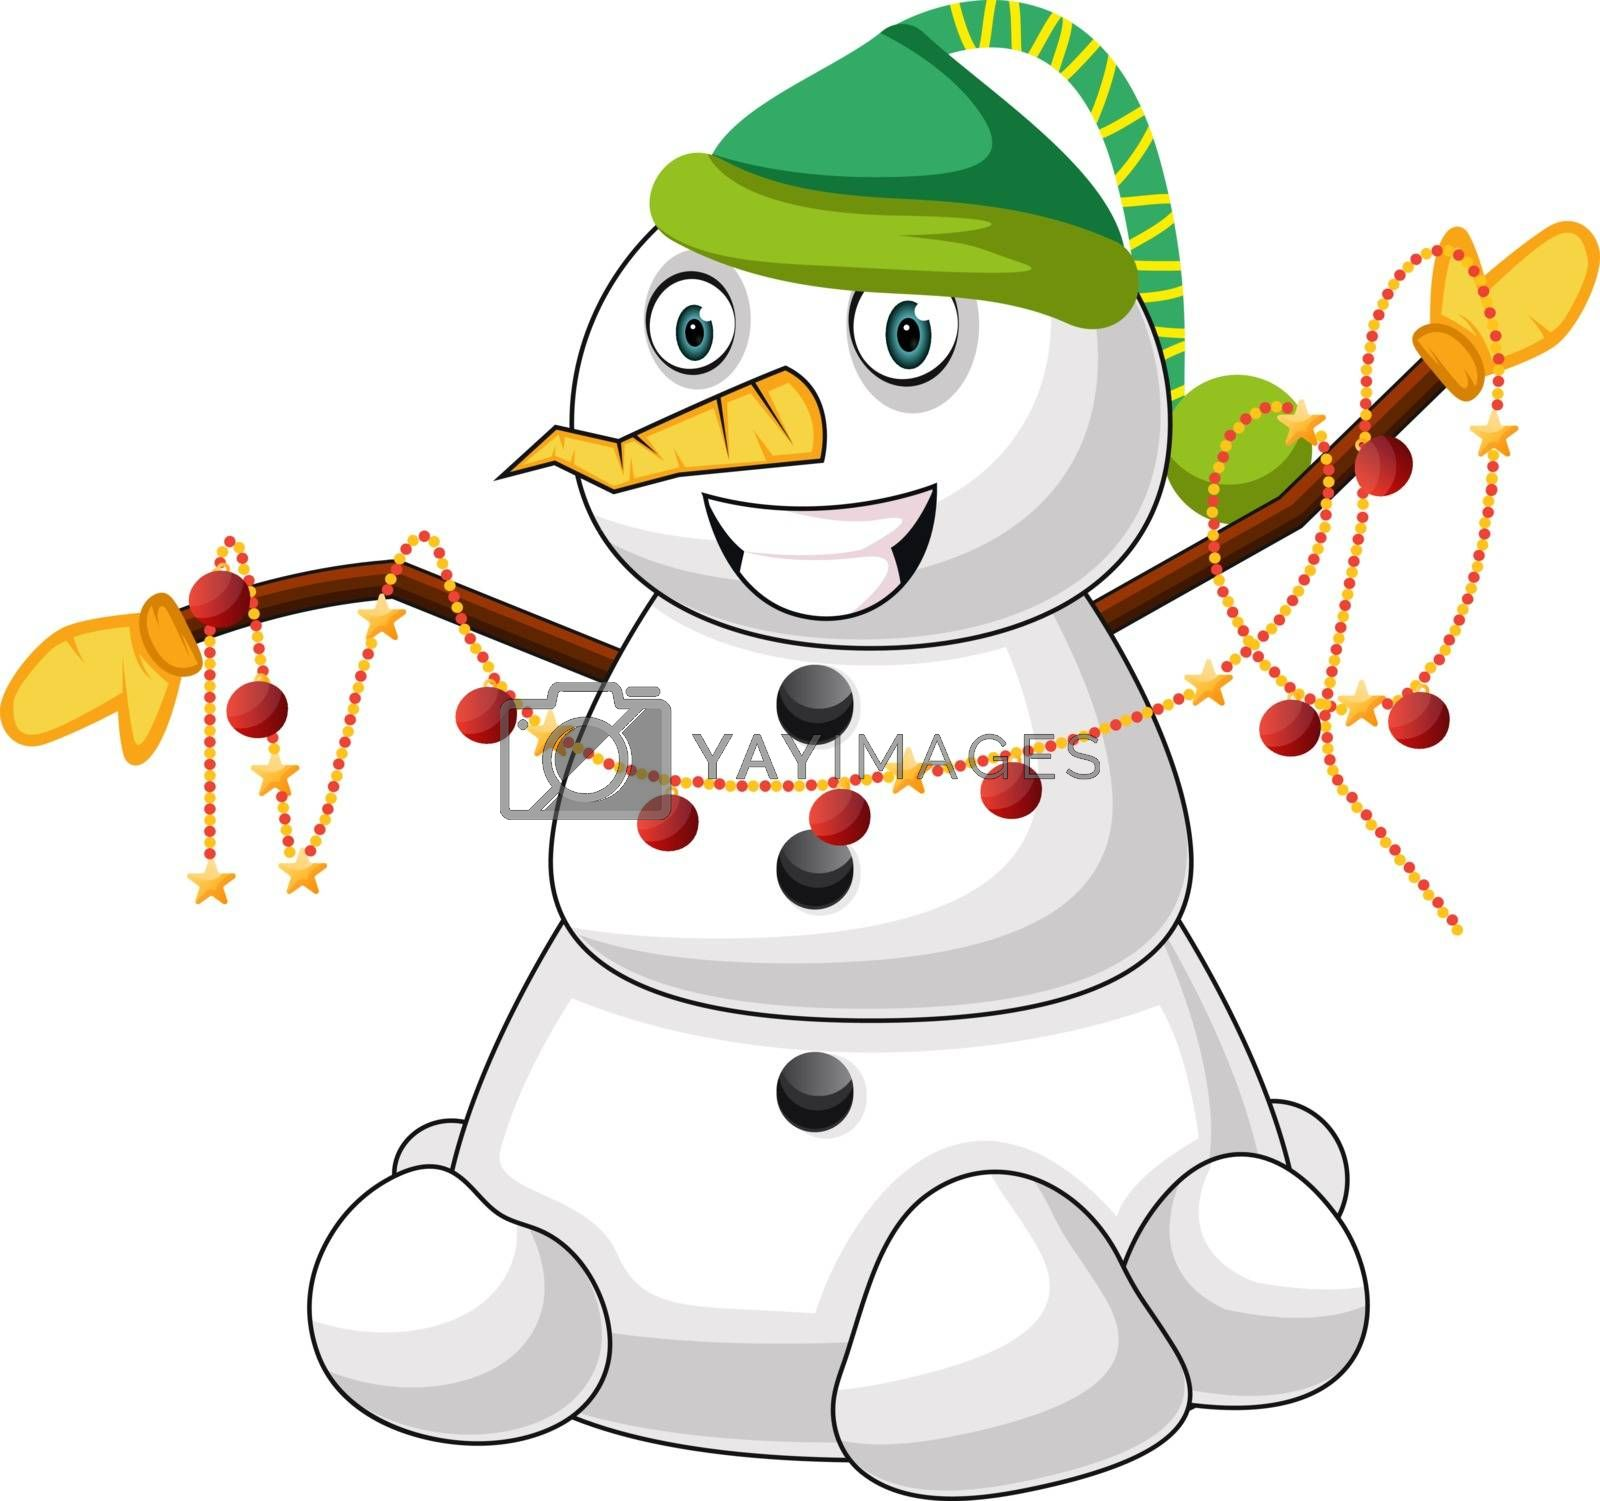 Royalty free image of Snowman with green hat illustration vector on white background by Morphart